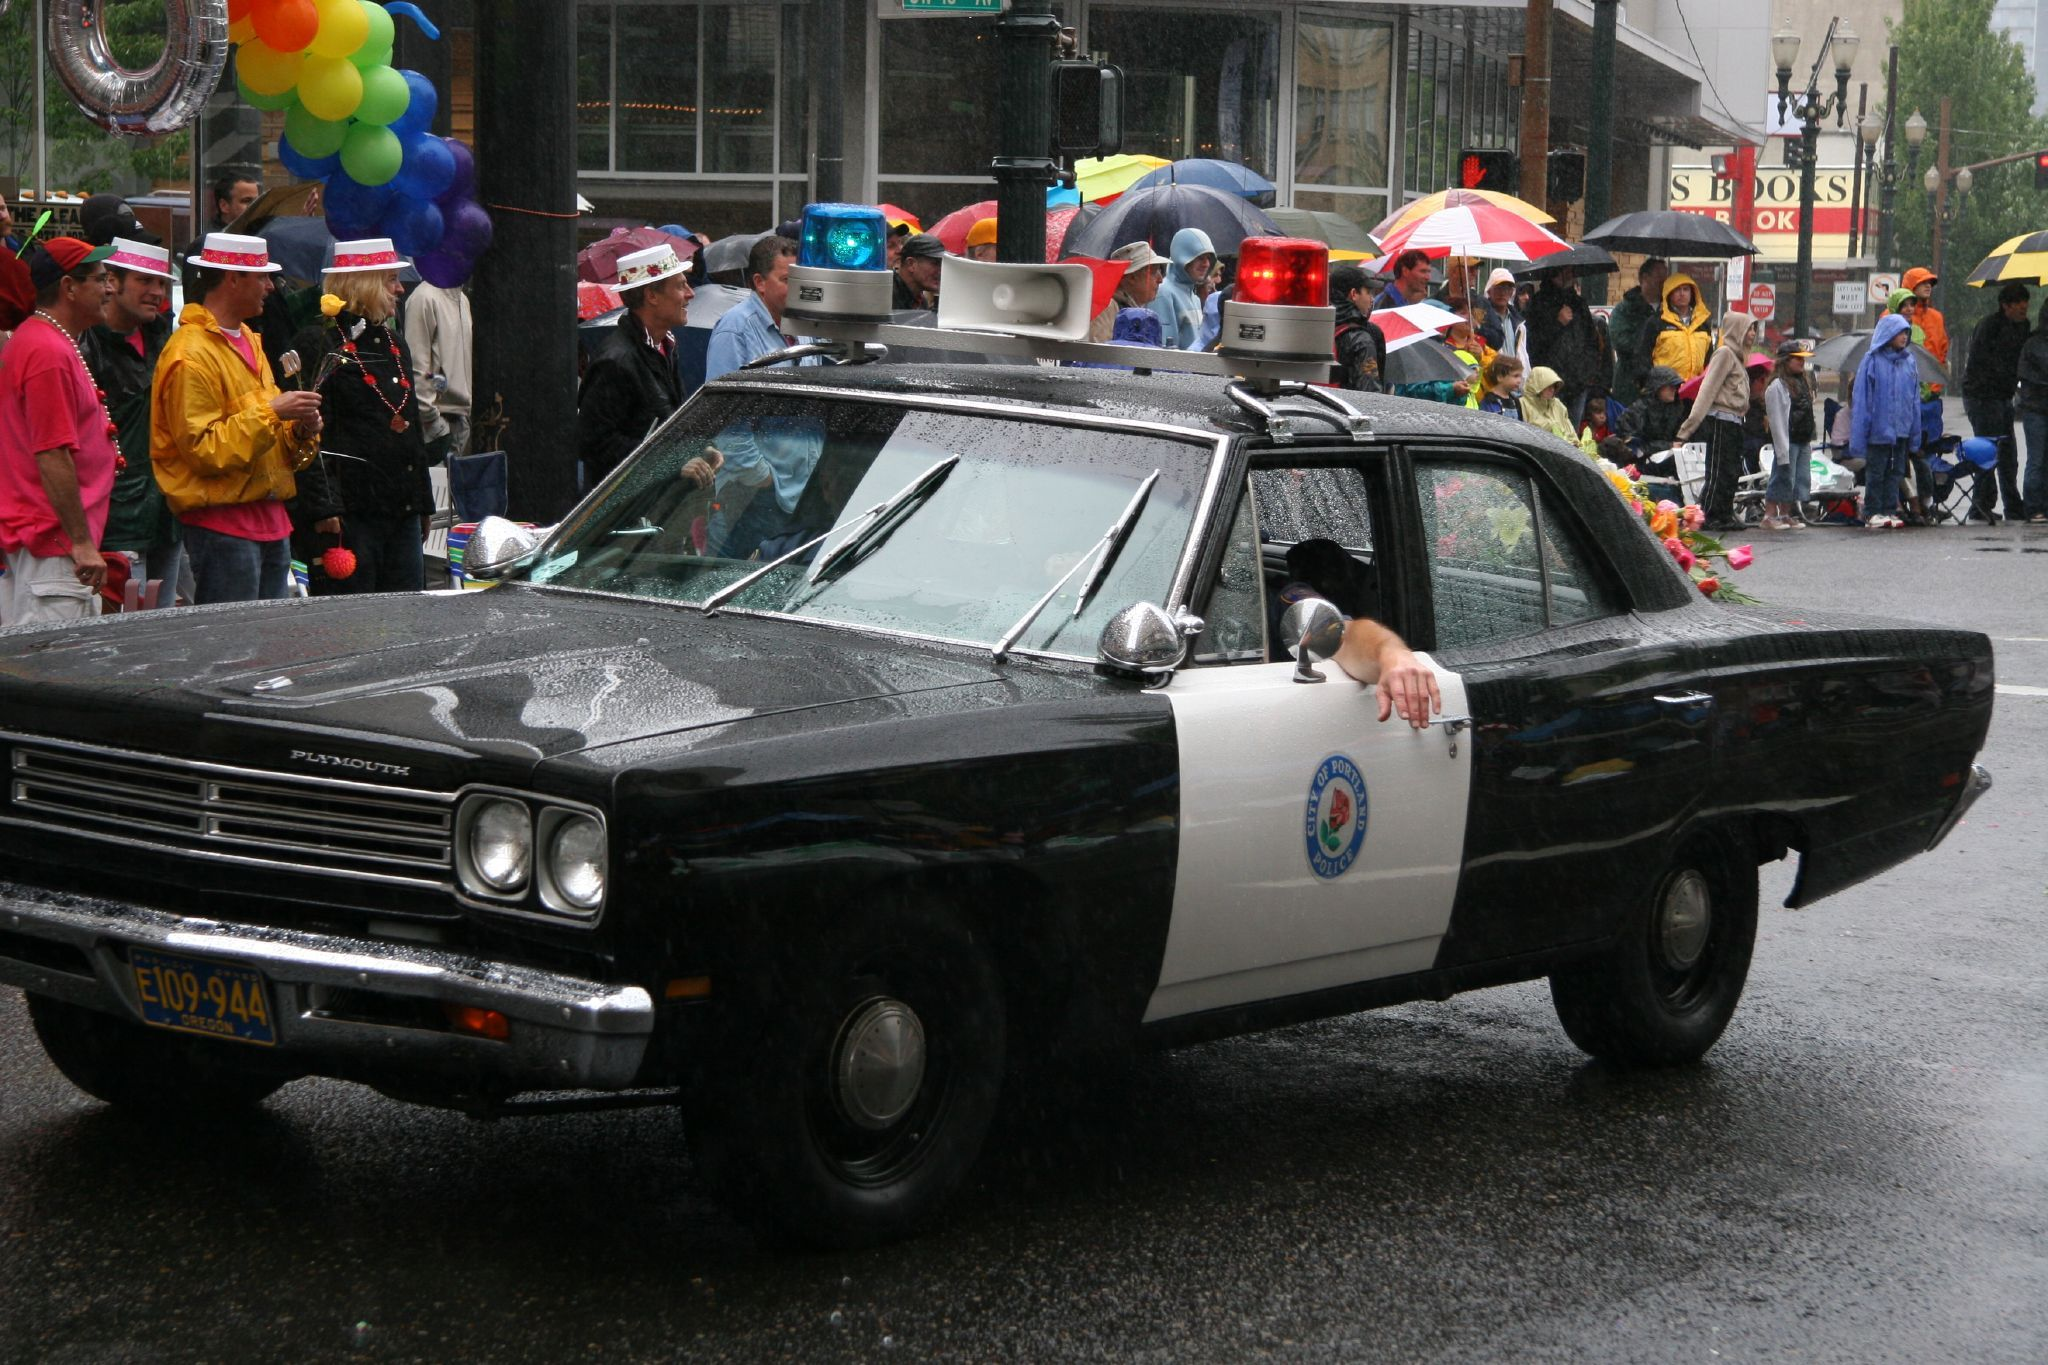 Pin On Hot Police Cars Ever